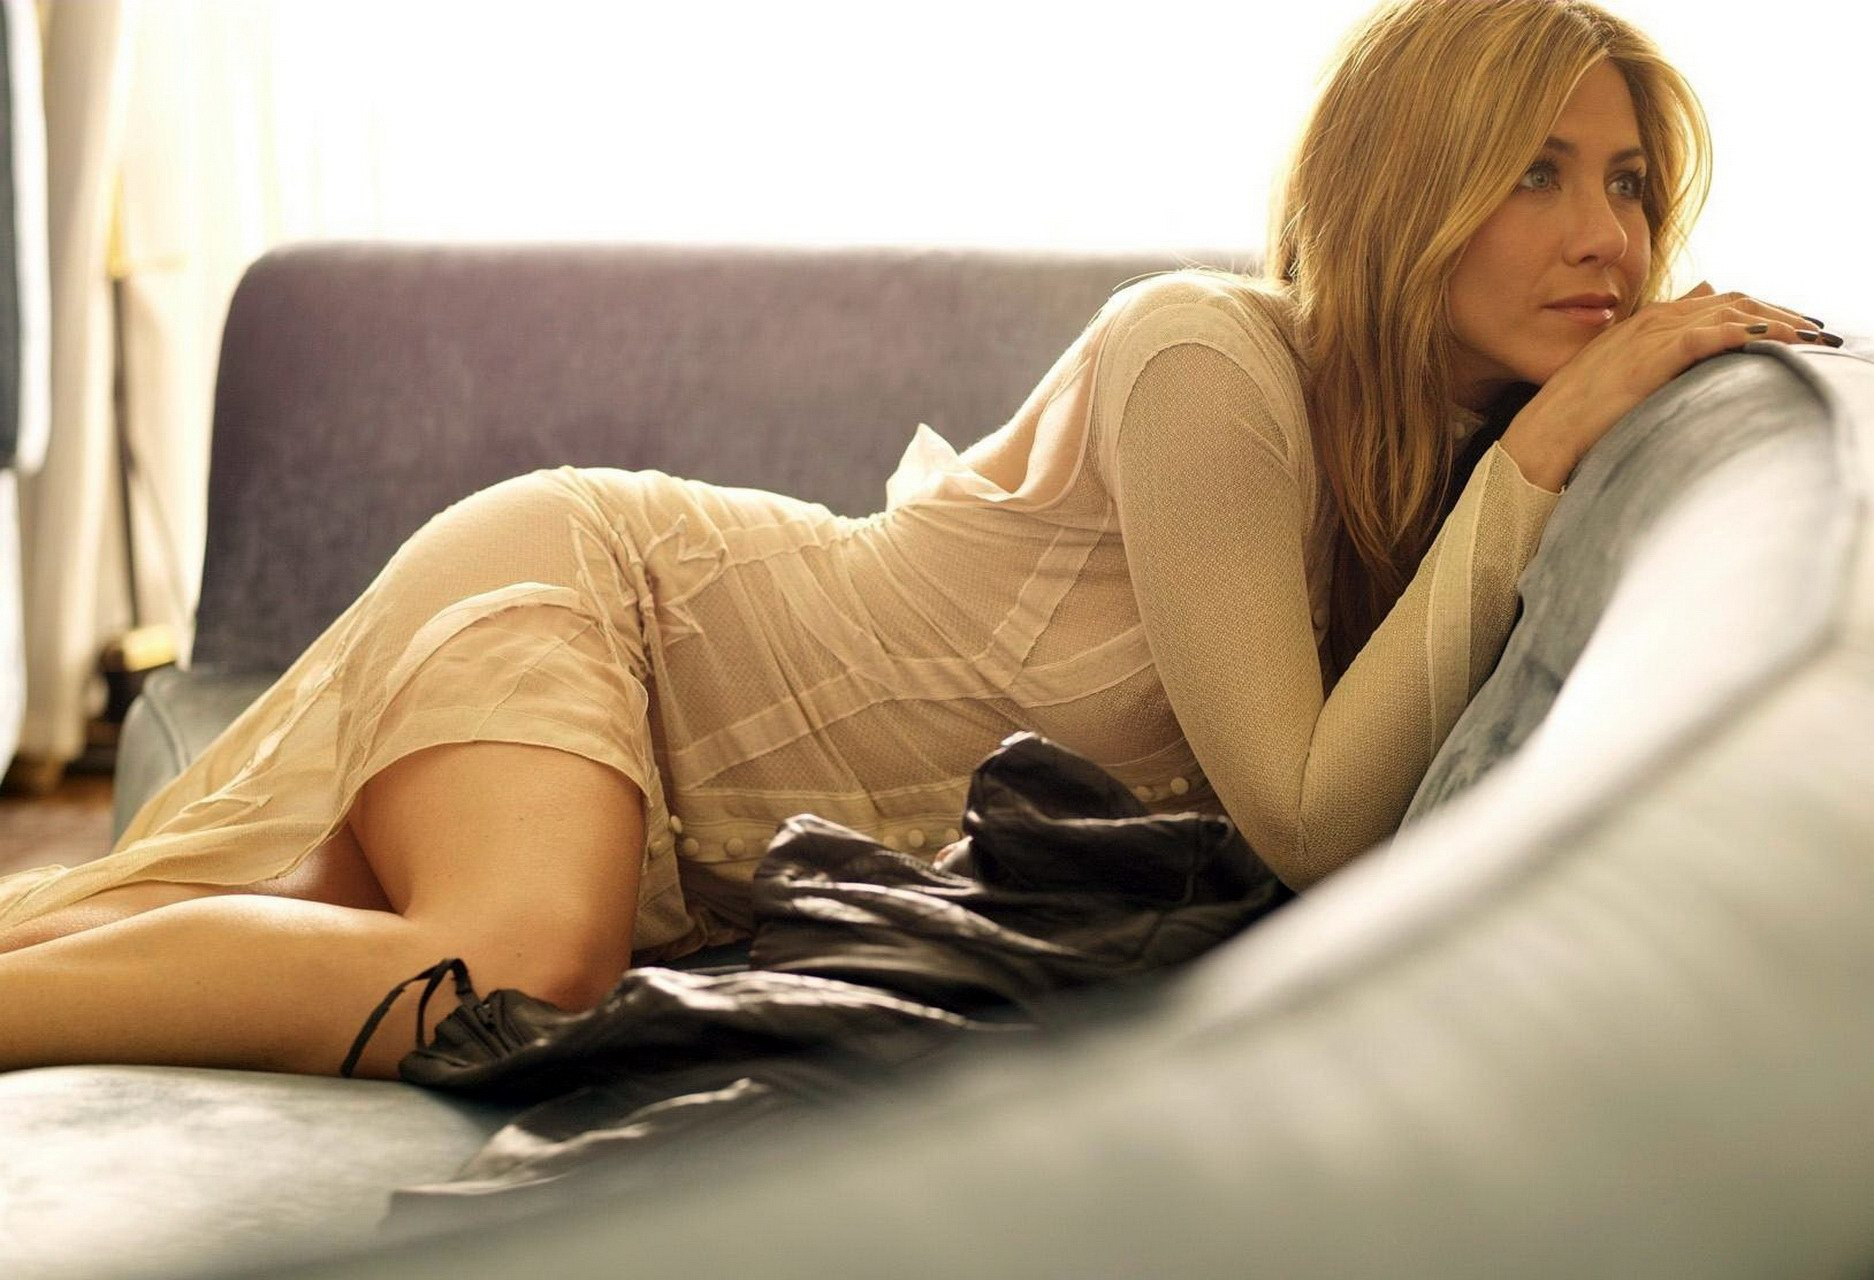 Jennifer Aniston Wallpapers - All Hd Wallpapers-2533